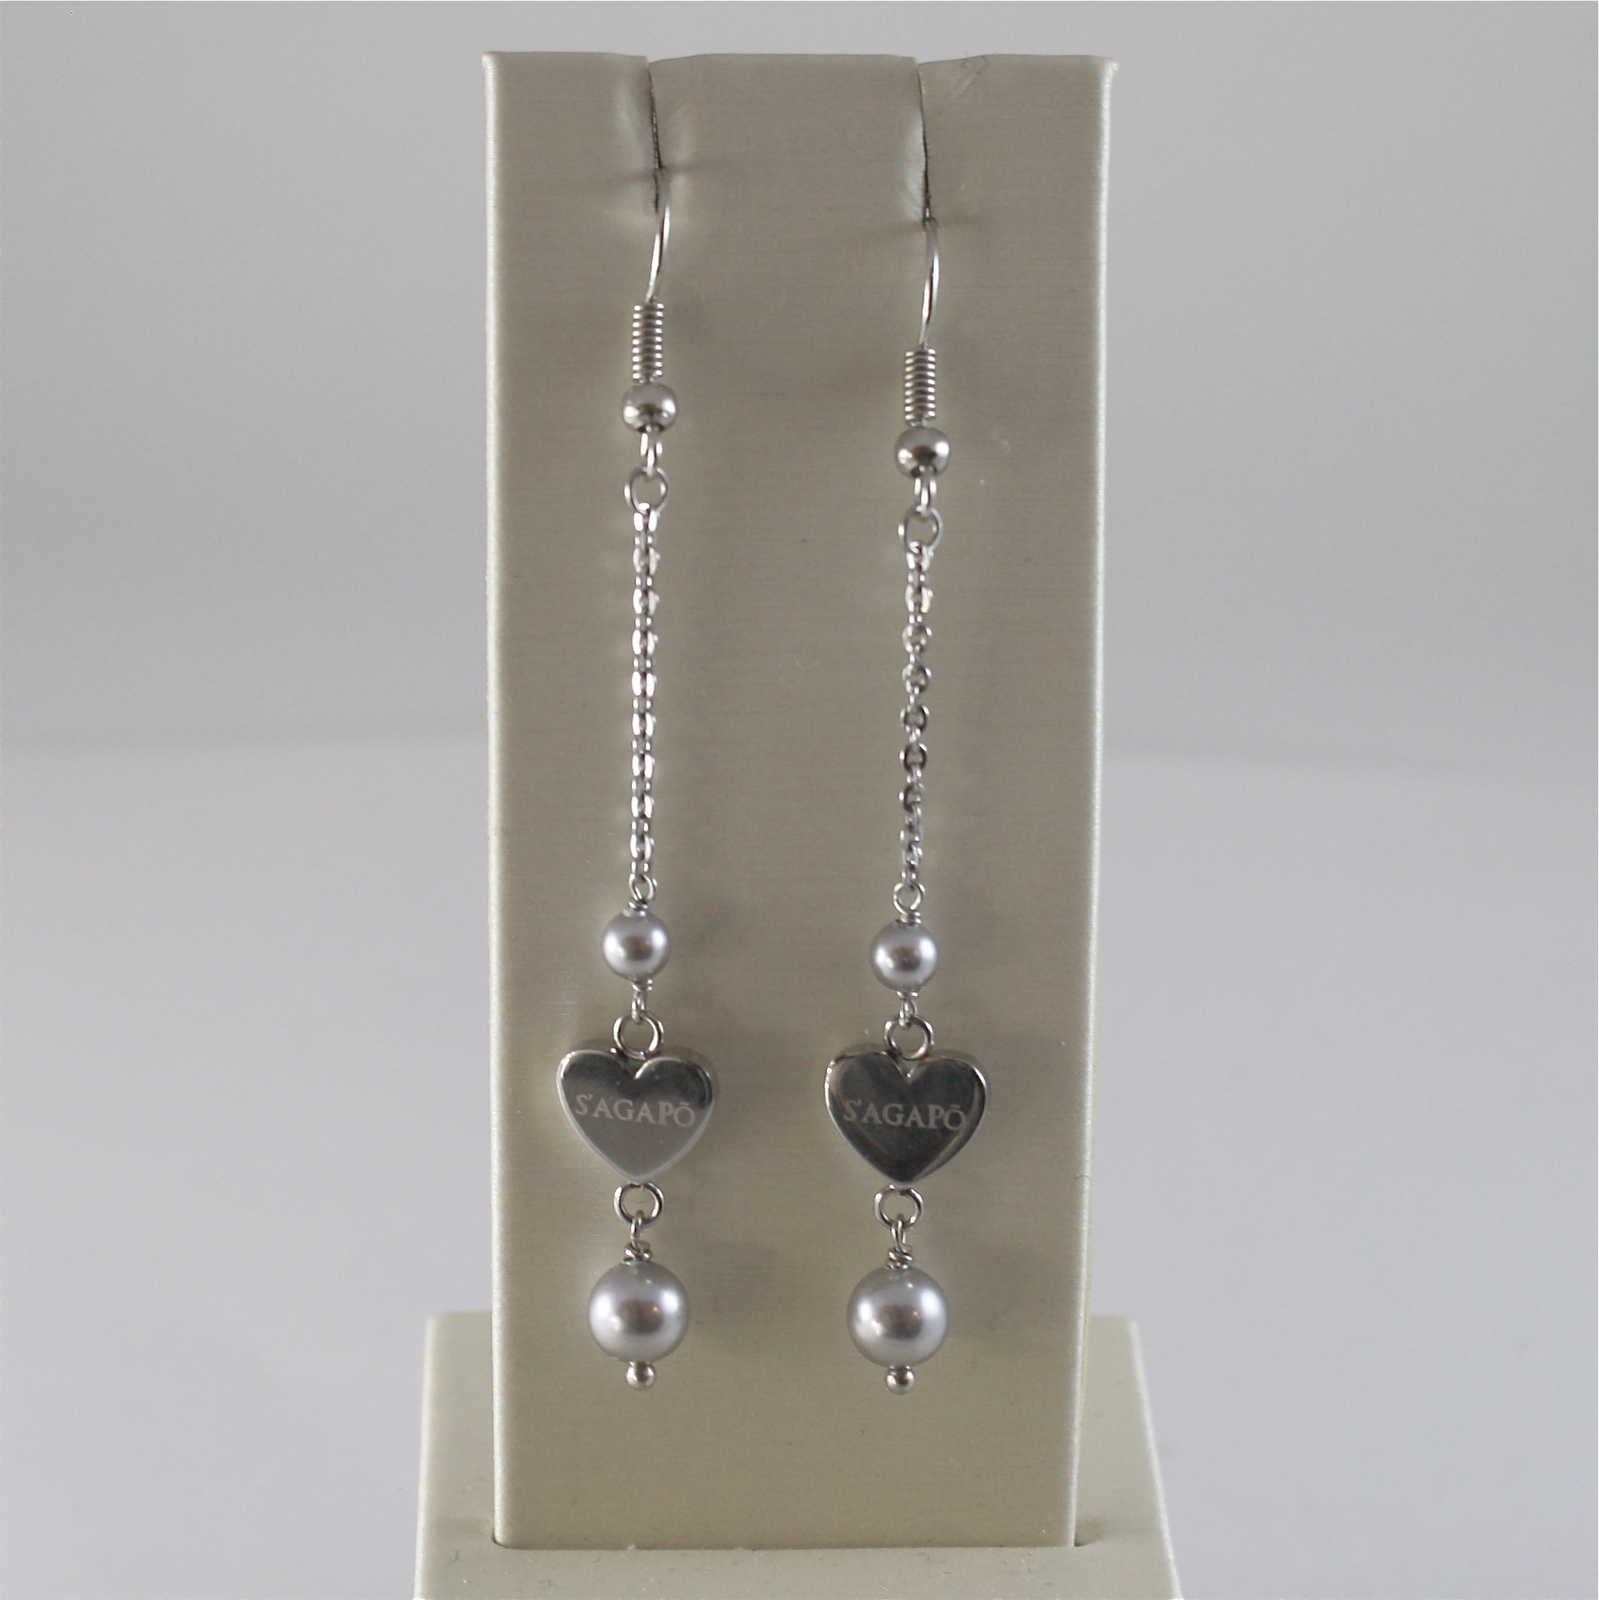 STAINLESS STEEL HOOK EARRINGS WITH GREY PEARLS AND HEART CHARMS, 2.75 IN LONG